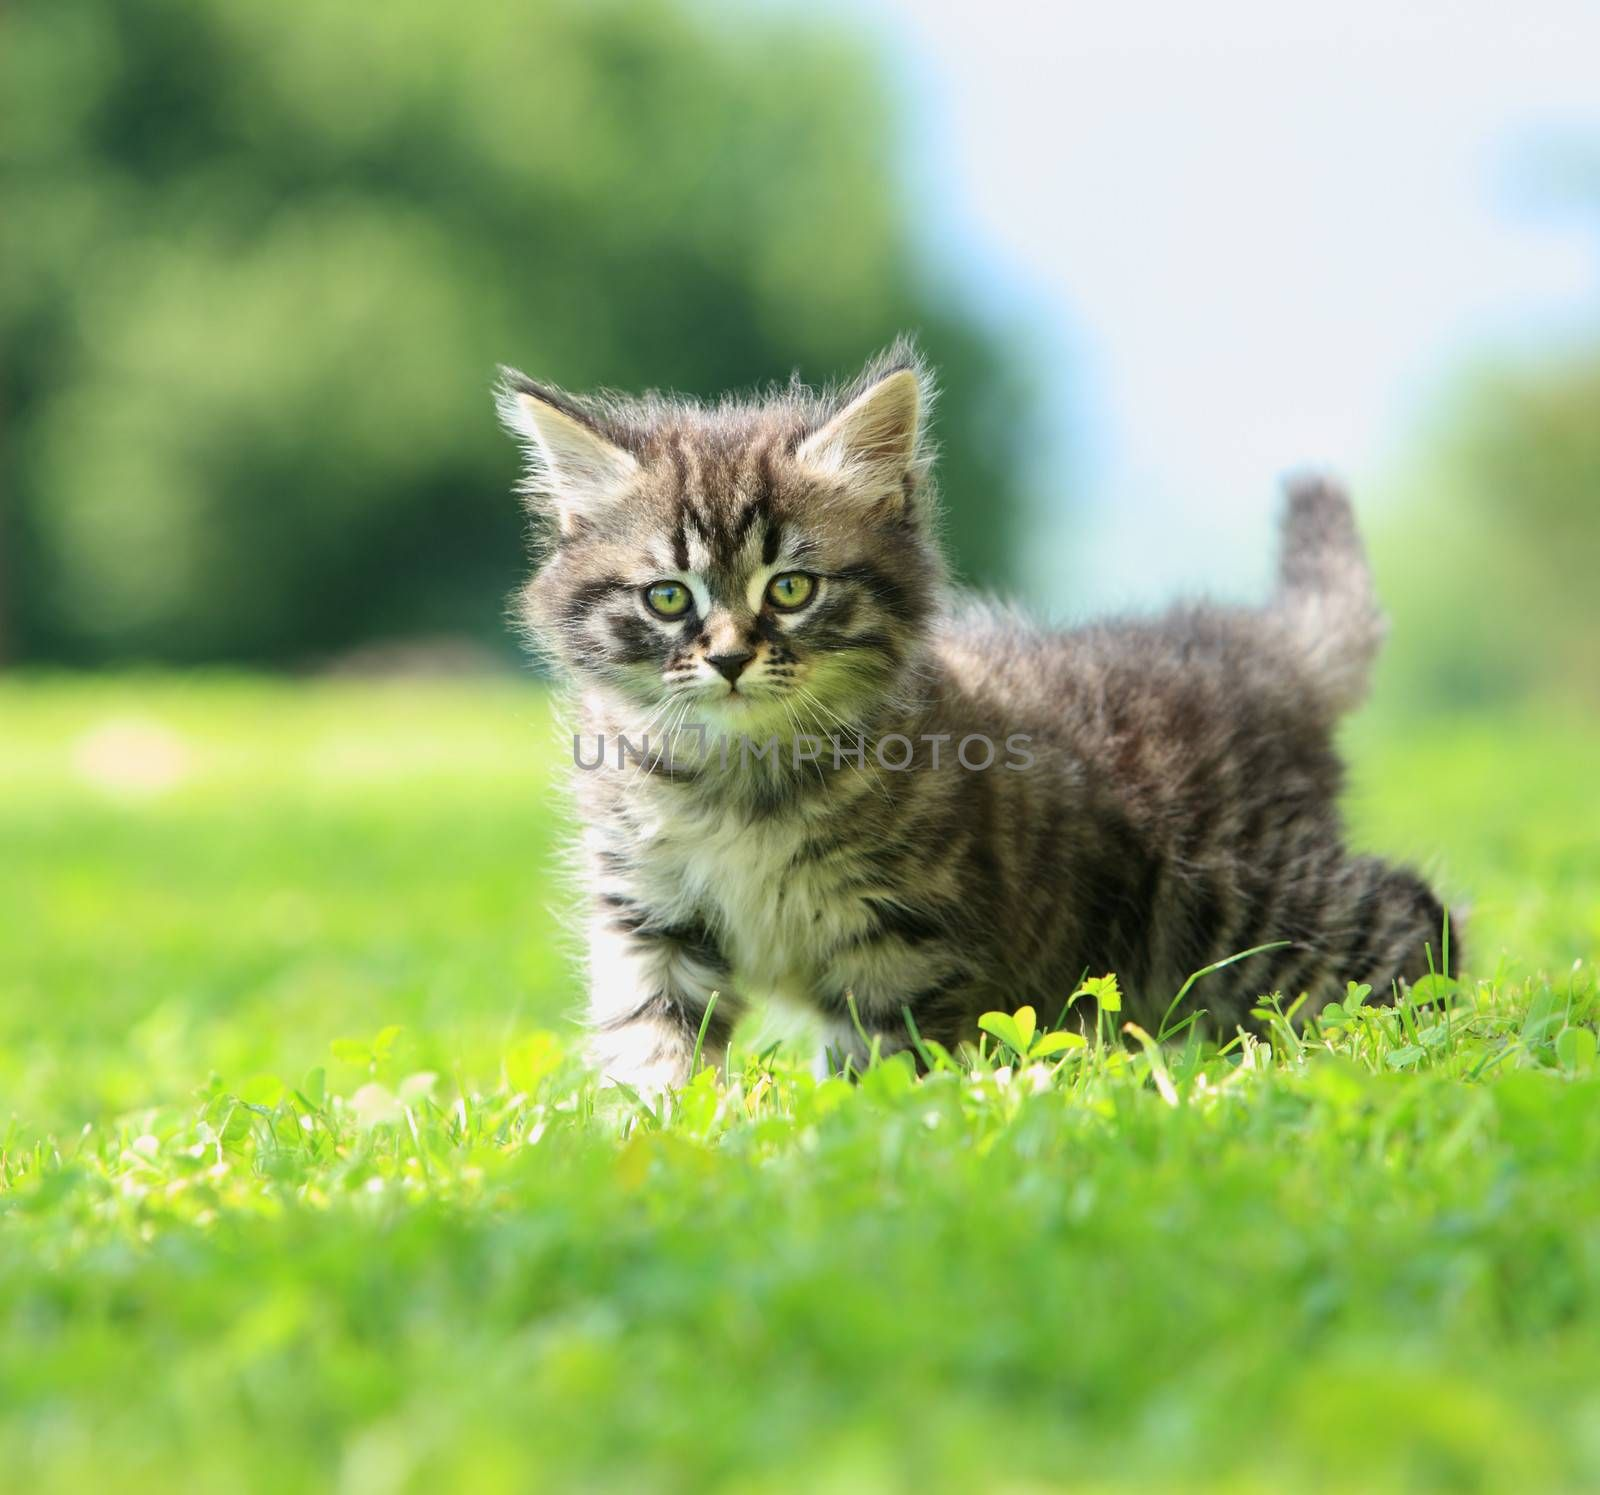 Cute little cat playing on the grass